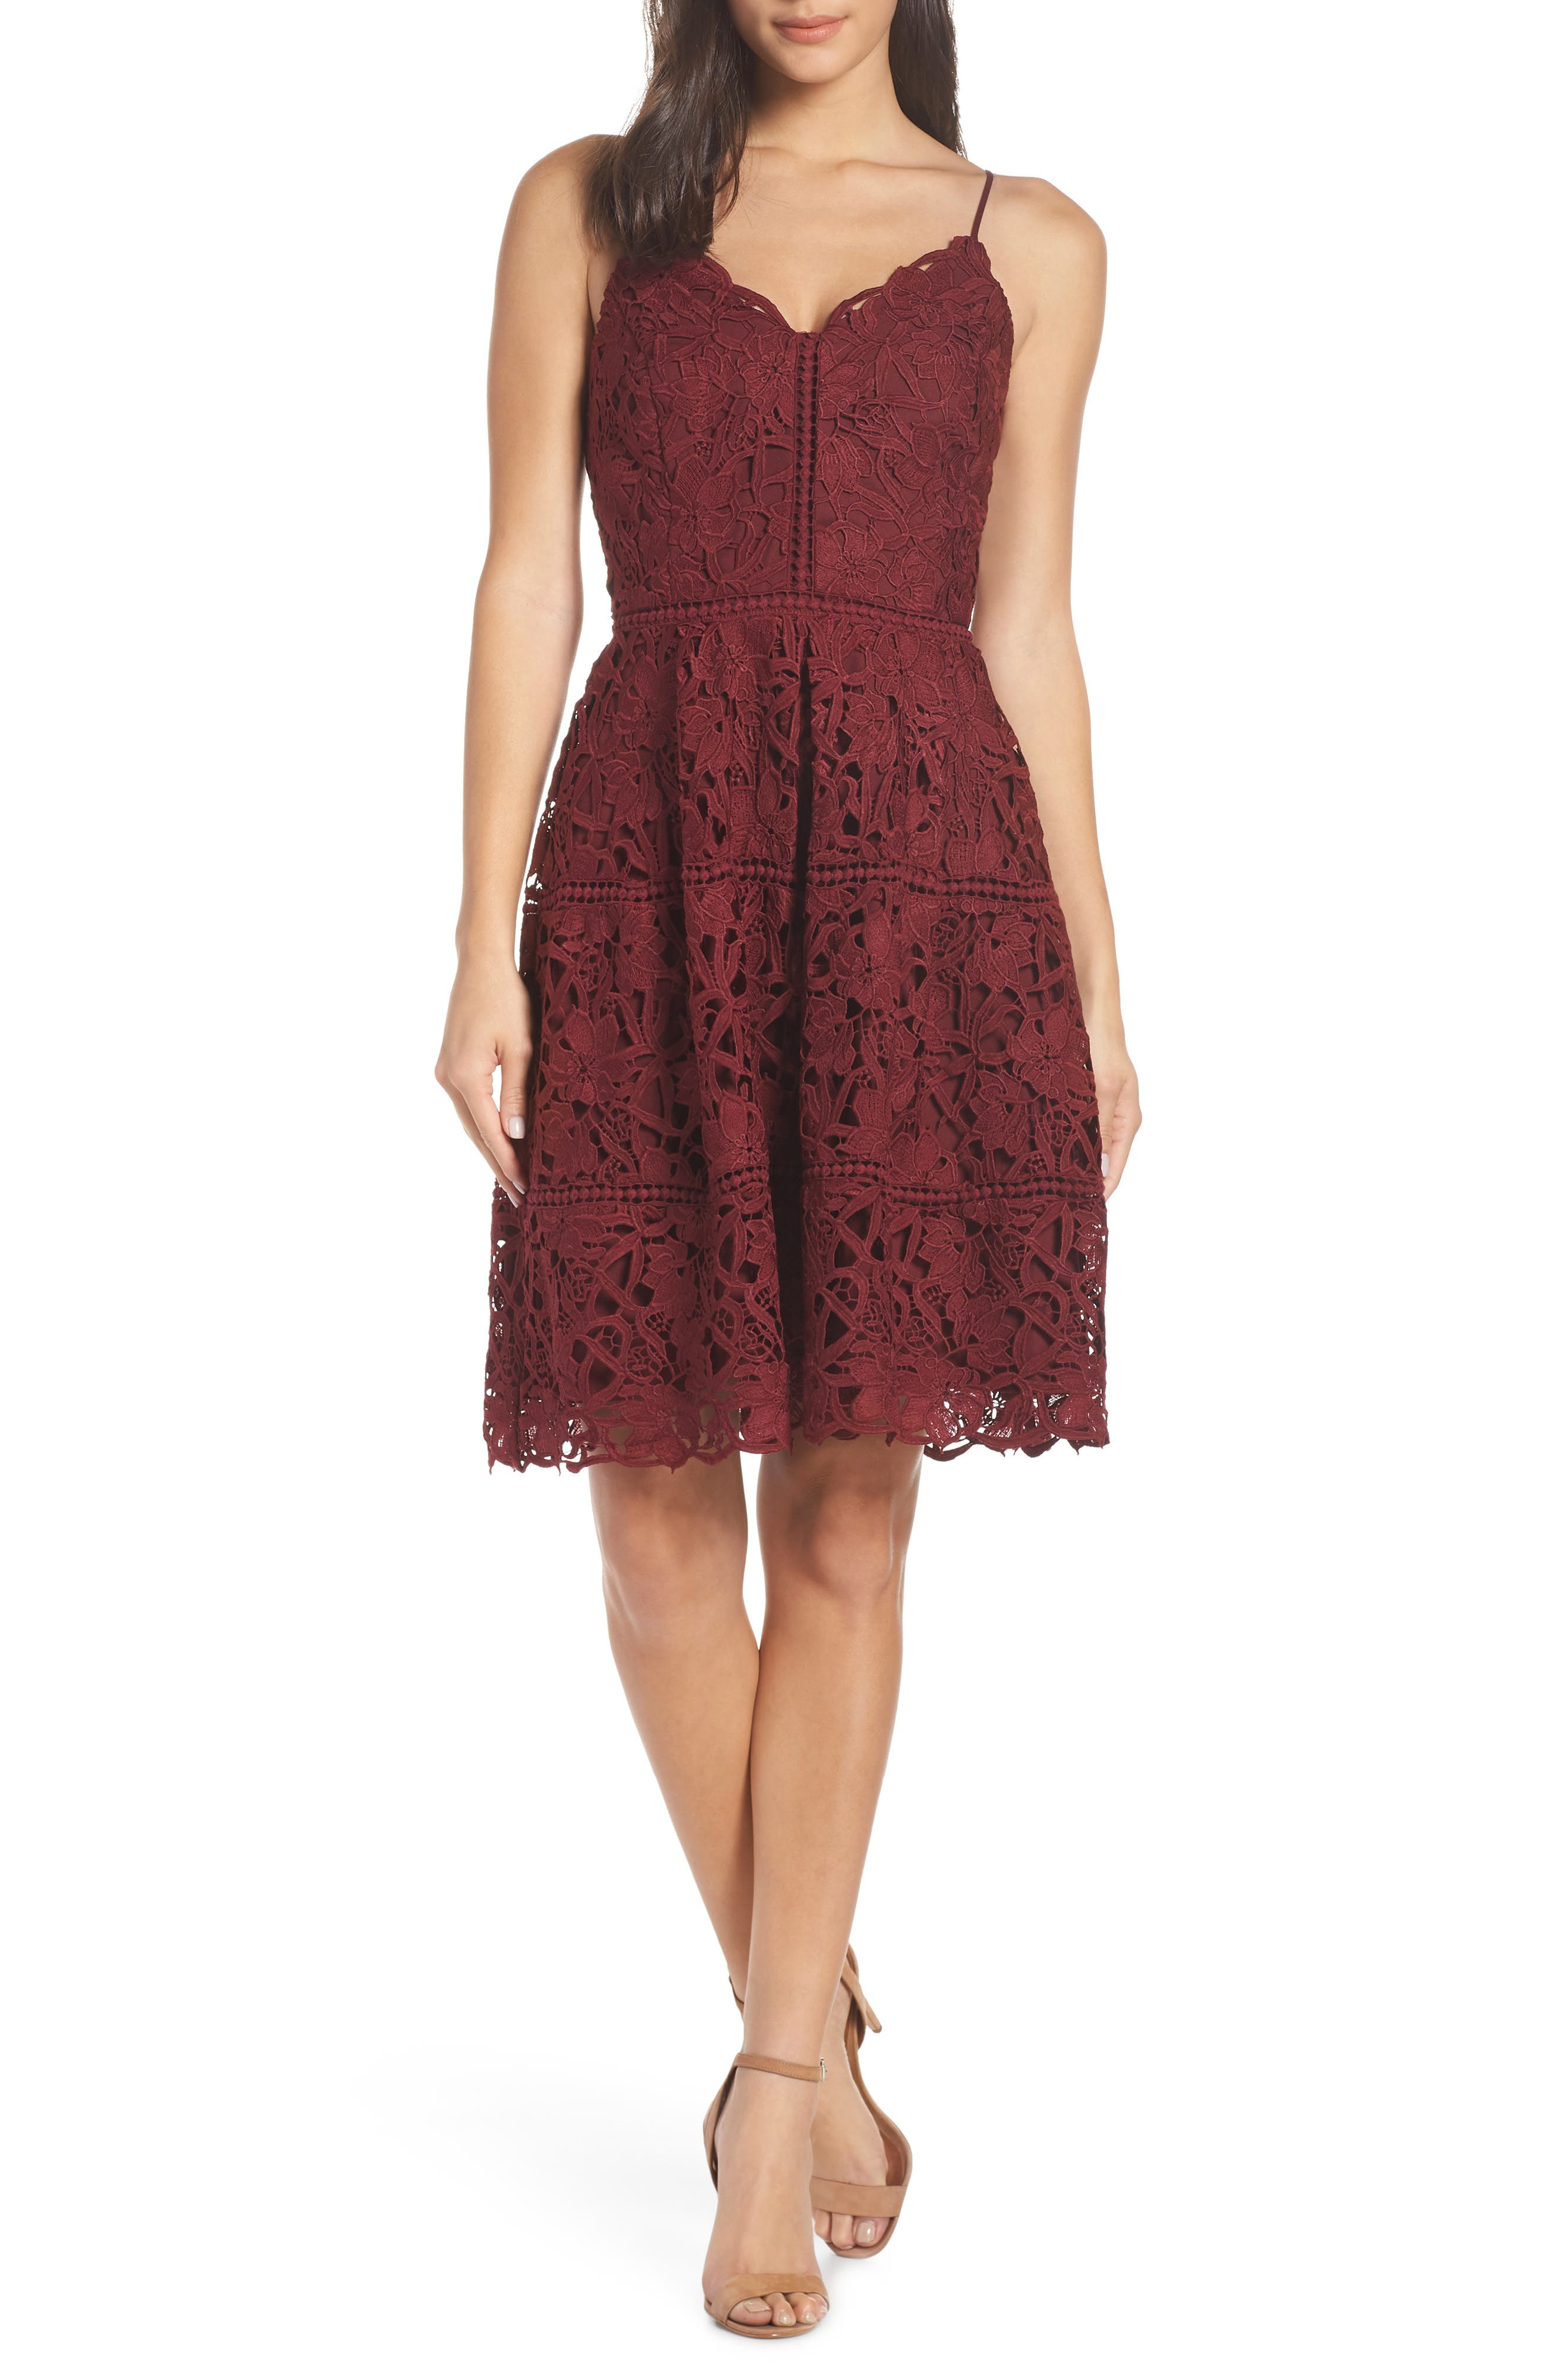 ADELYN RAE Jenny Lace Fit & Flare Dress in Cabernet